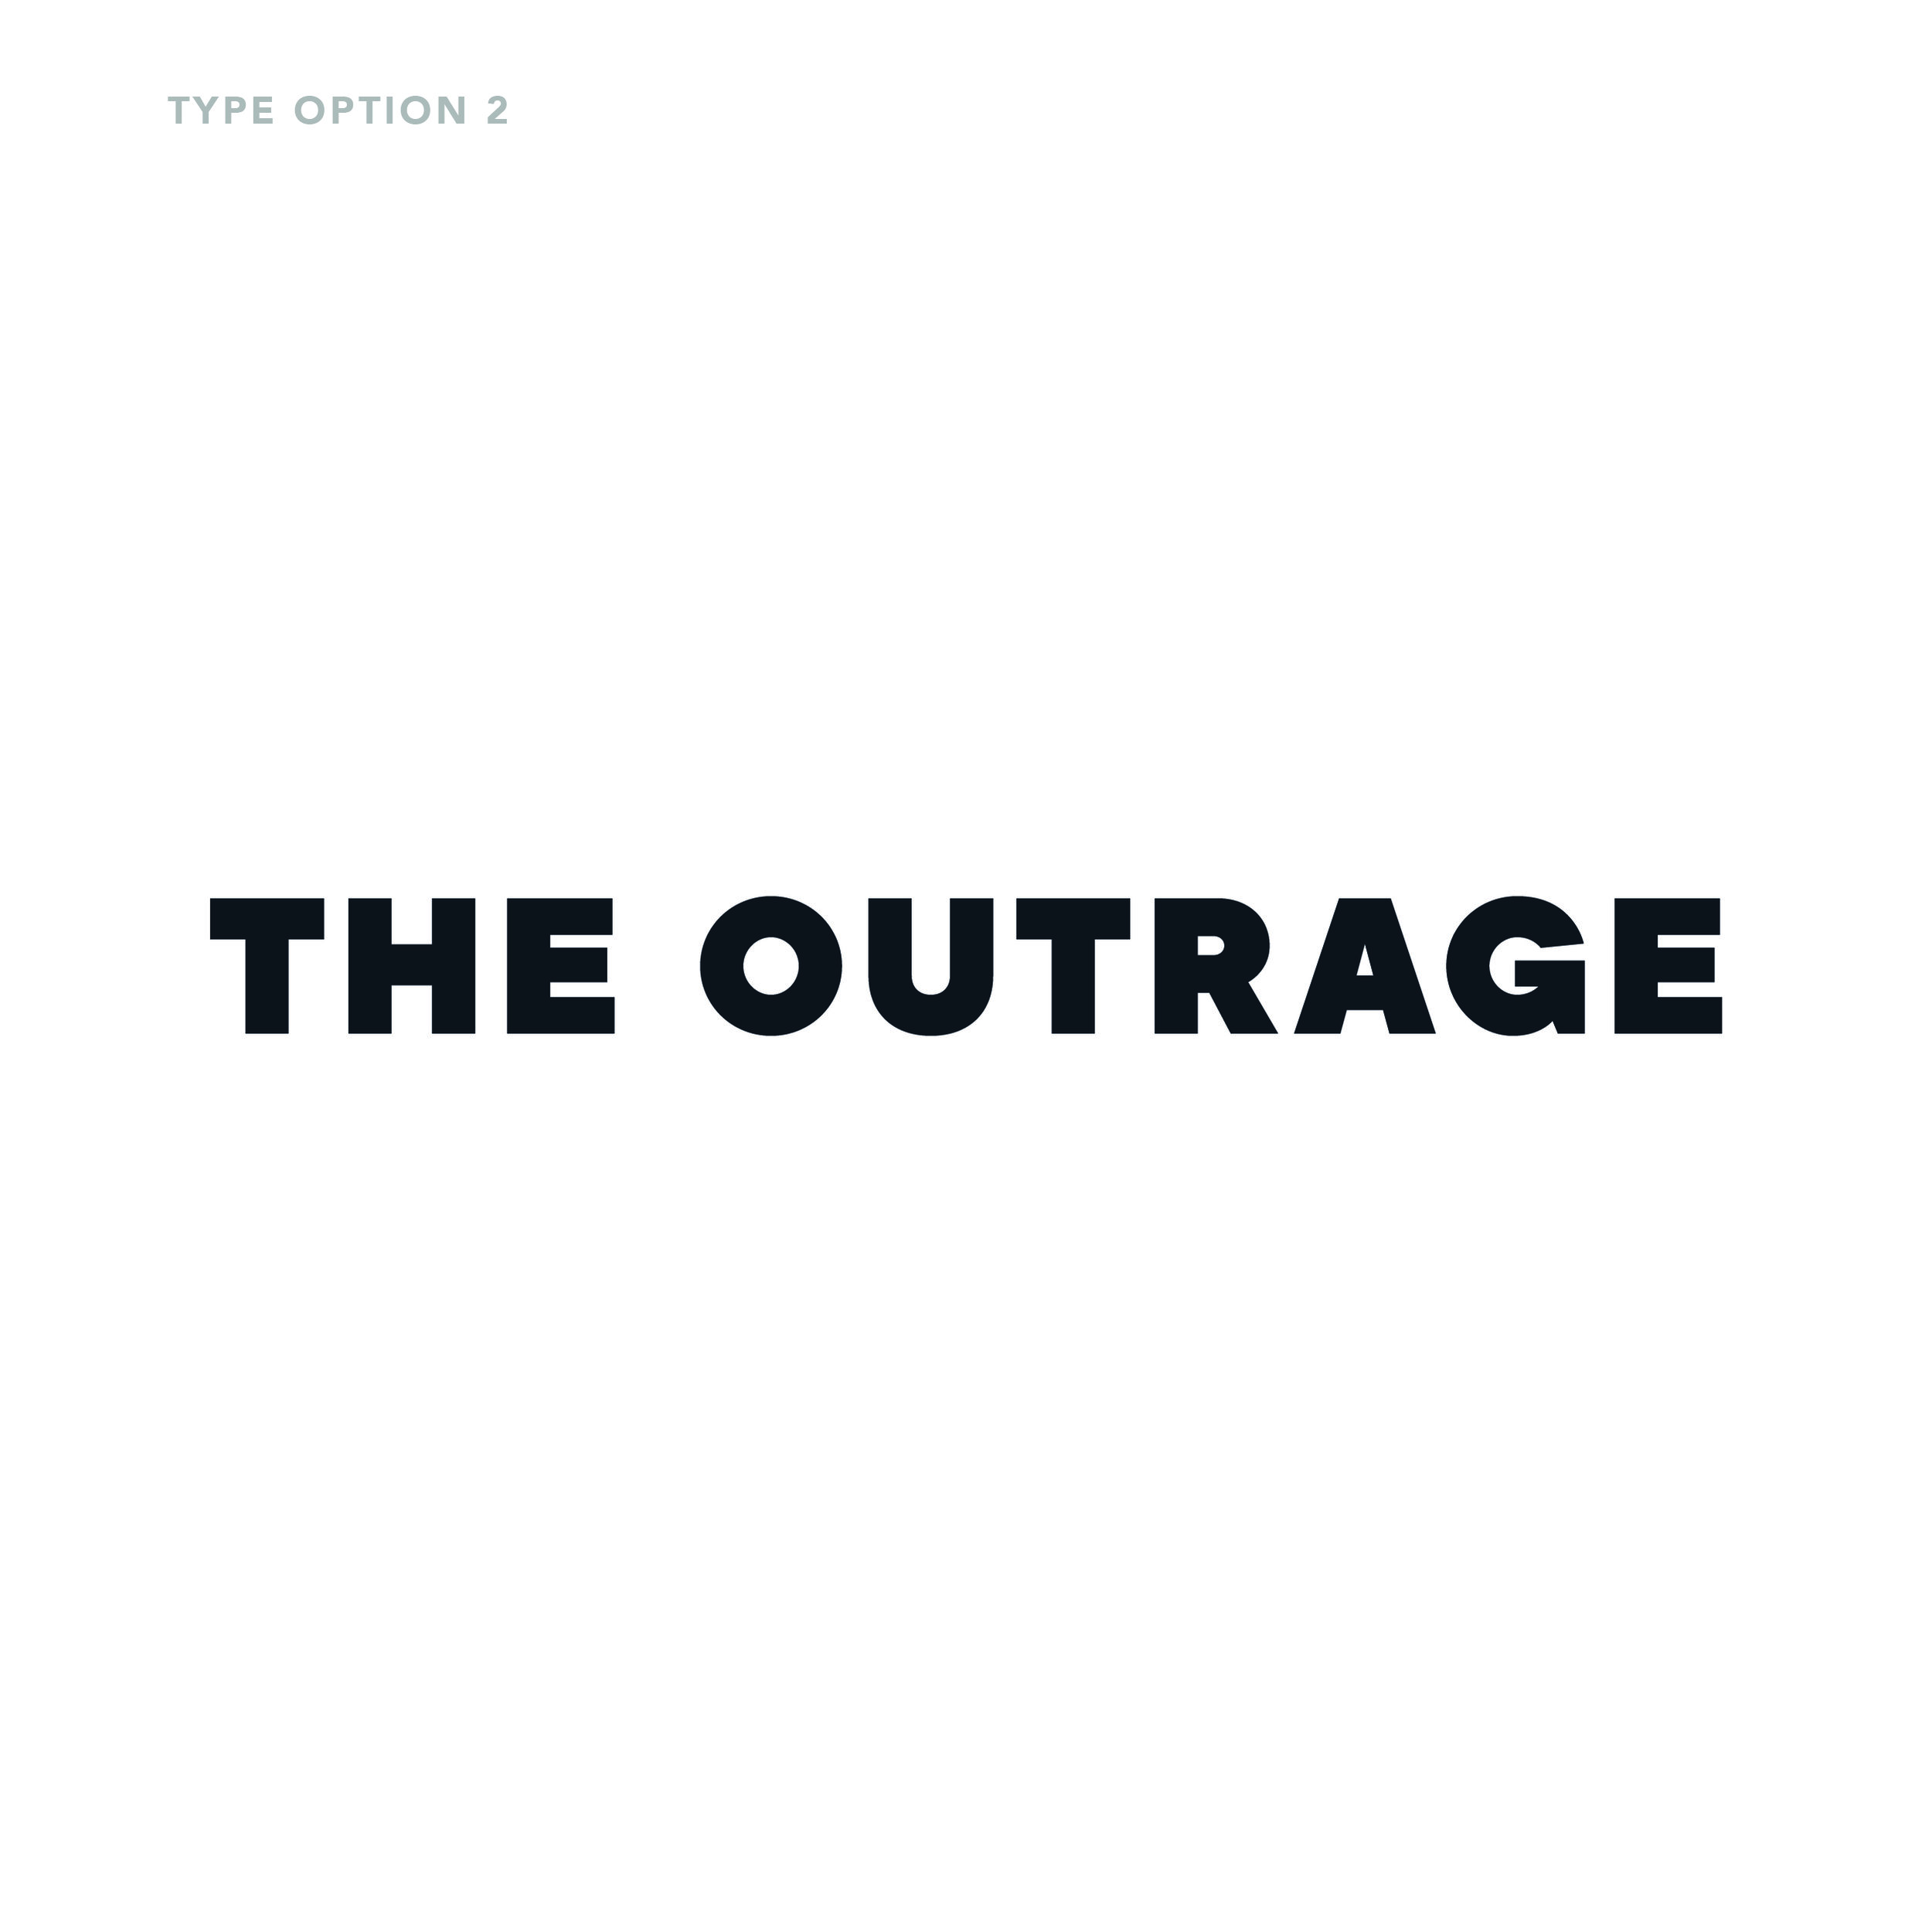 The Outrage_Logo_Type Option 2.jpg